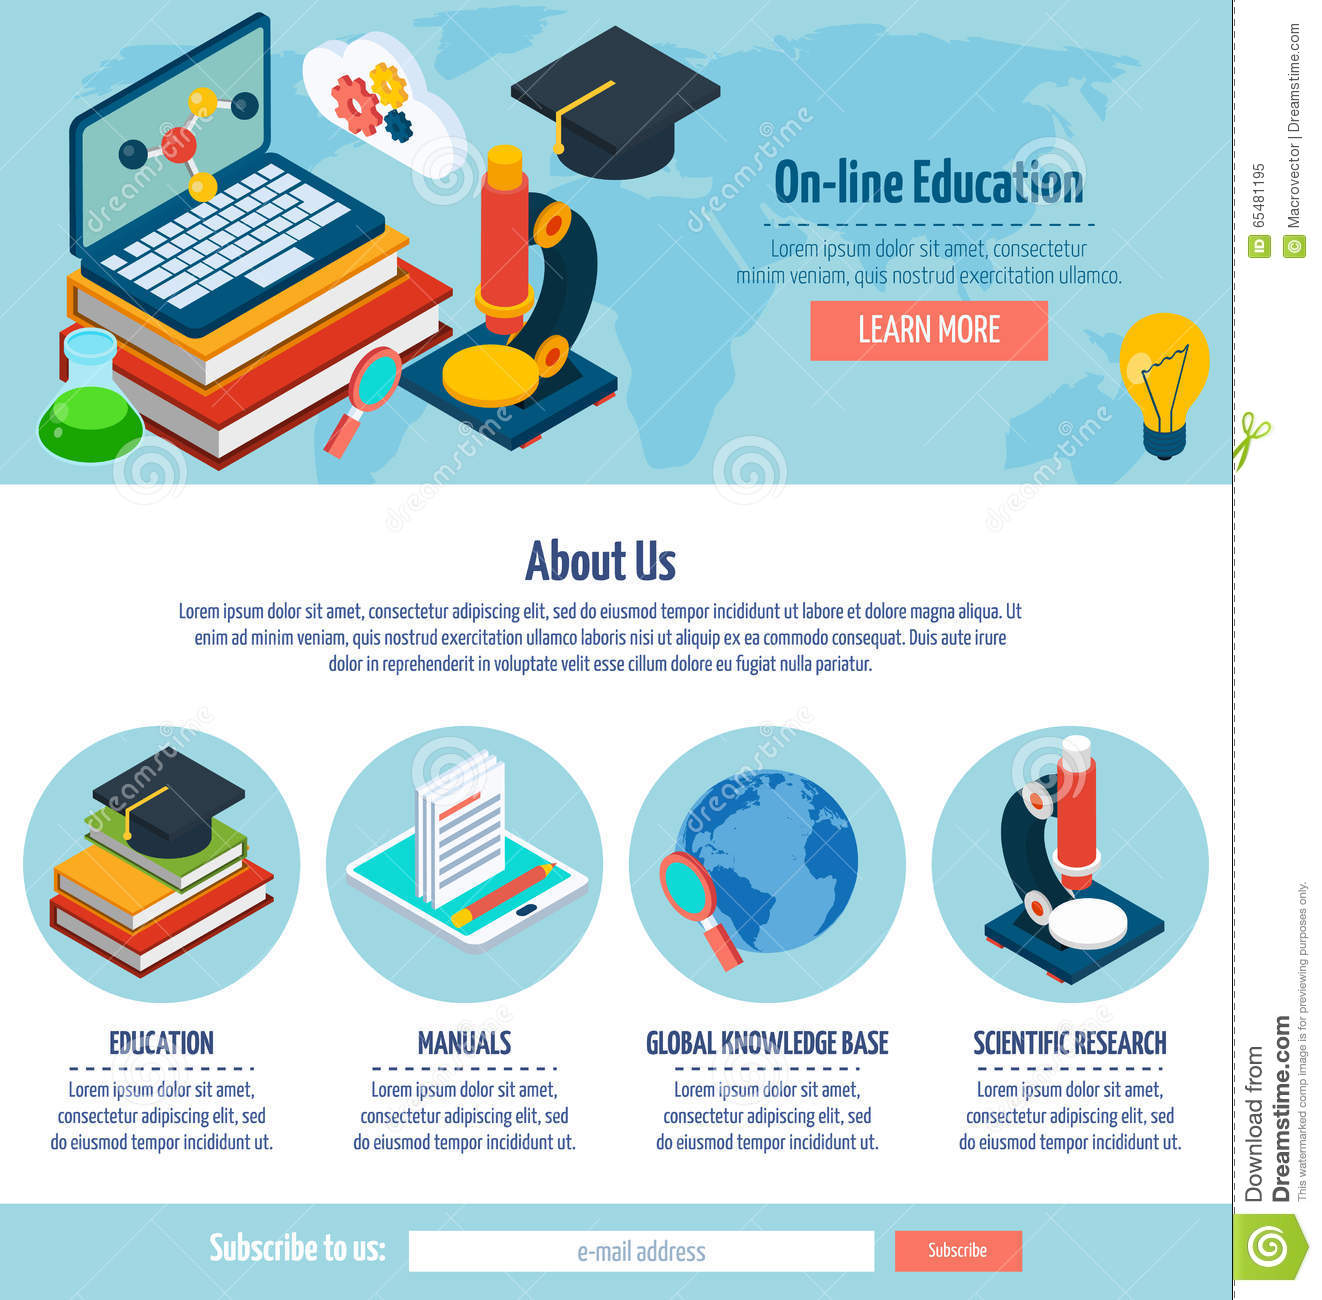 One page online education design stock vector image - How to learn web designing at home free ...